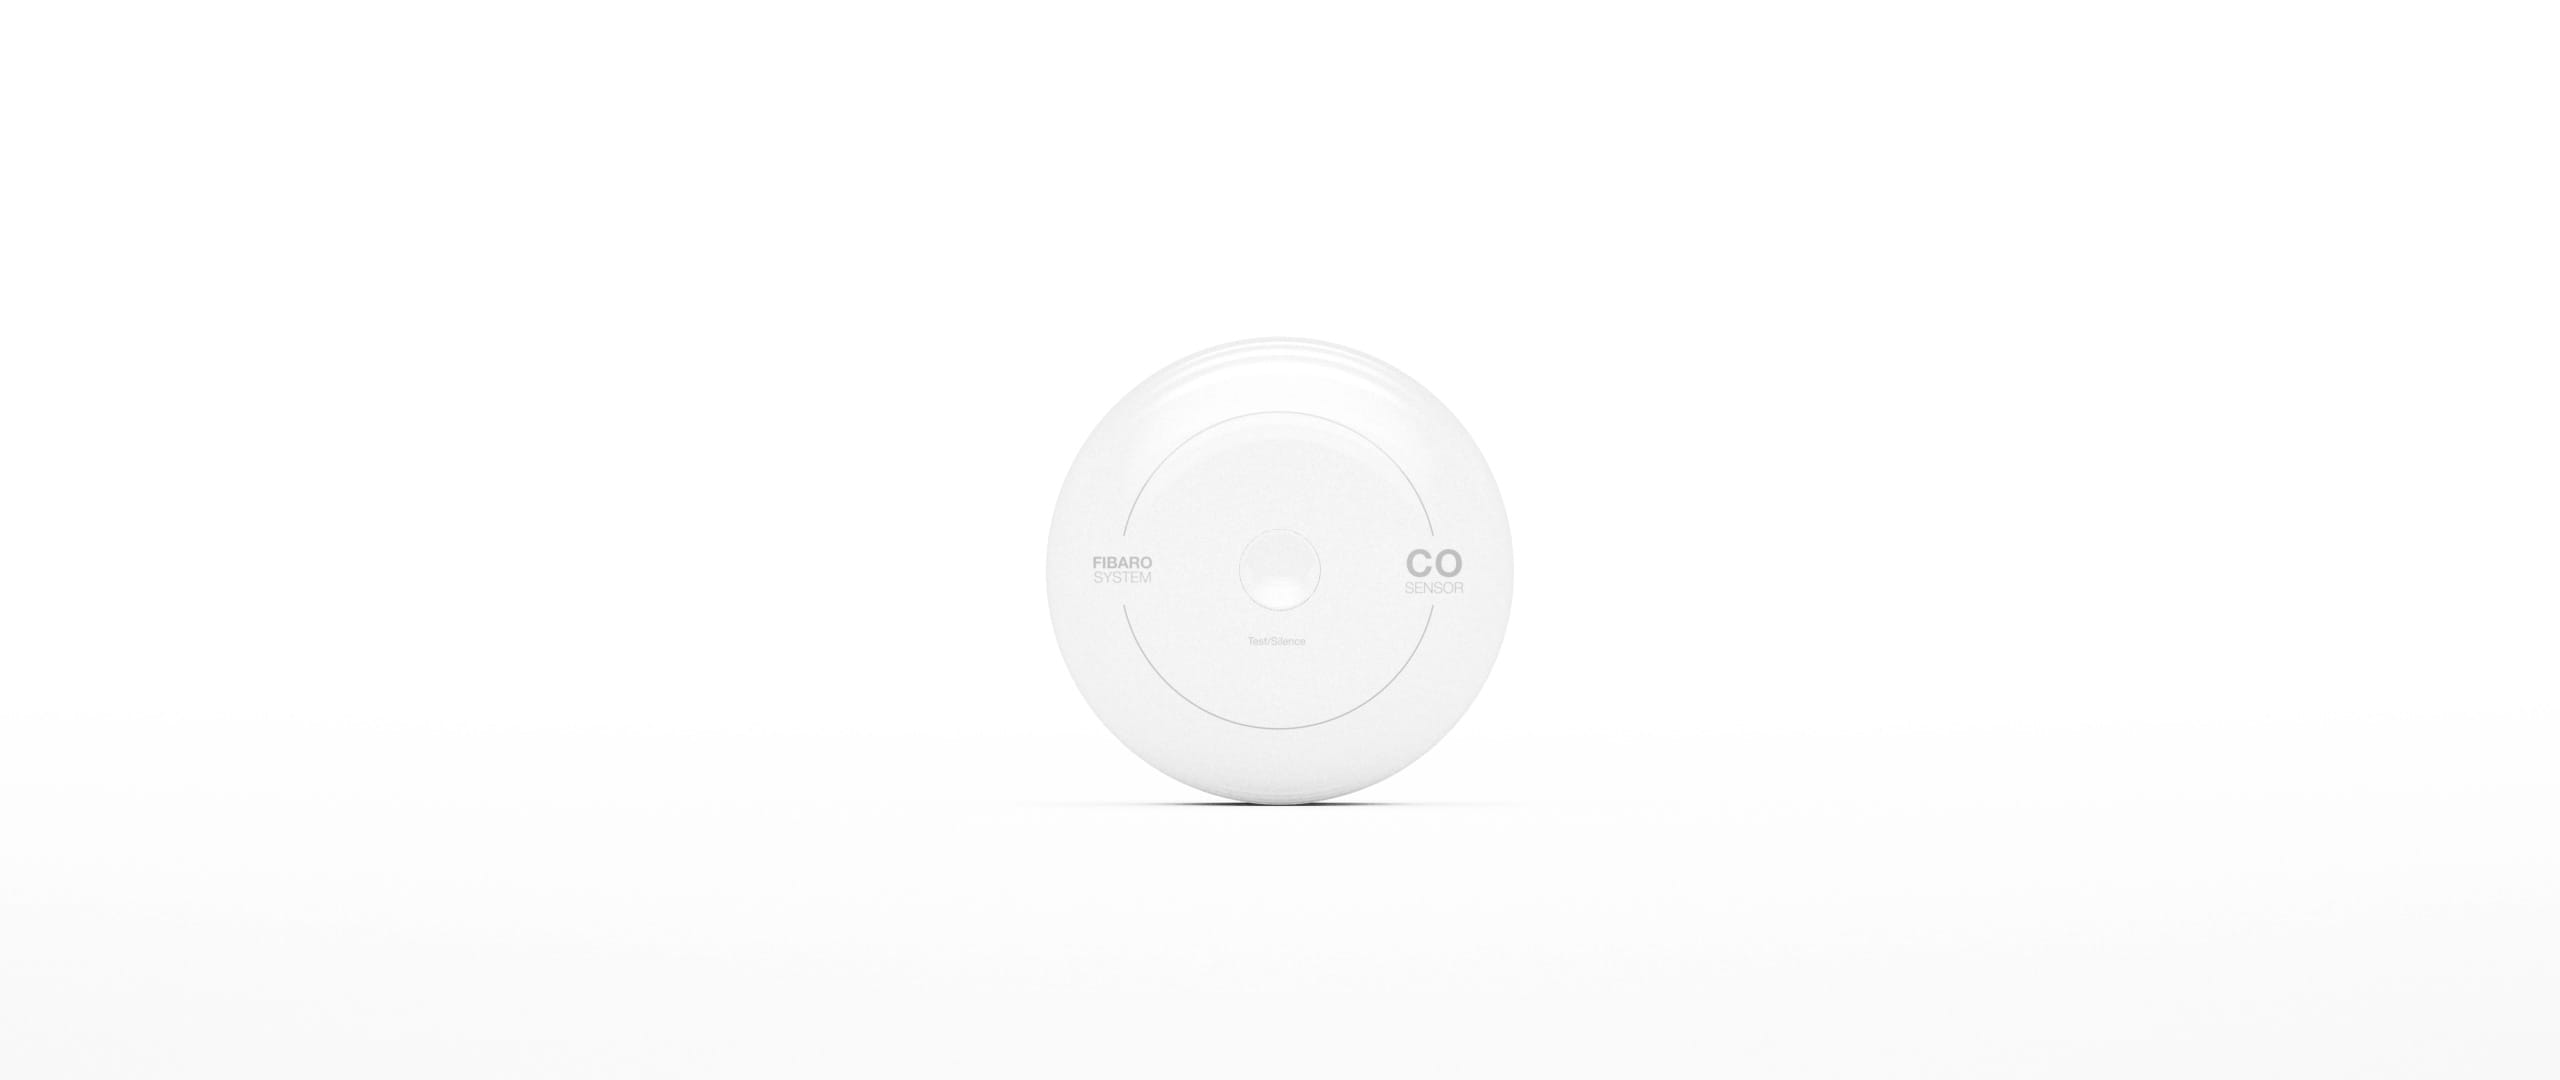 Koolmonoxidemelder Kopen Koolmonoxidemelder Co Sensor Fibaro